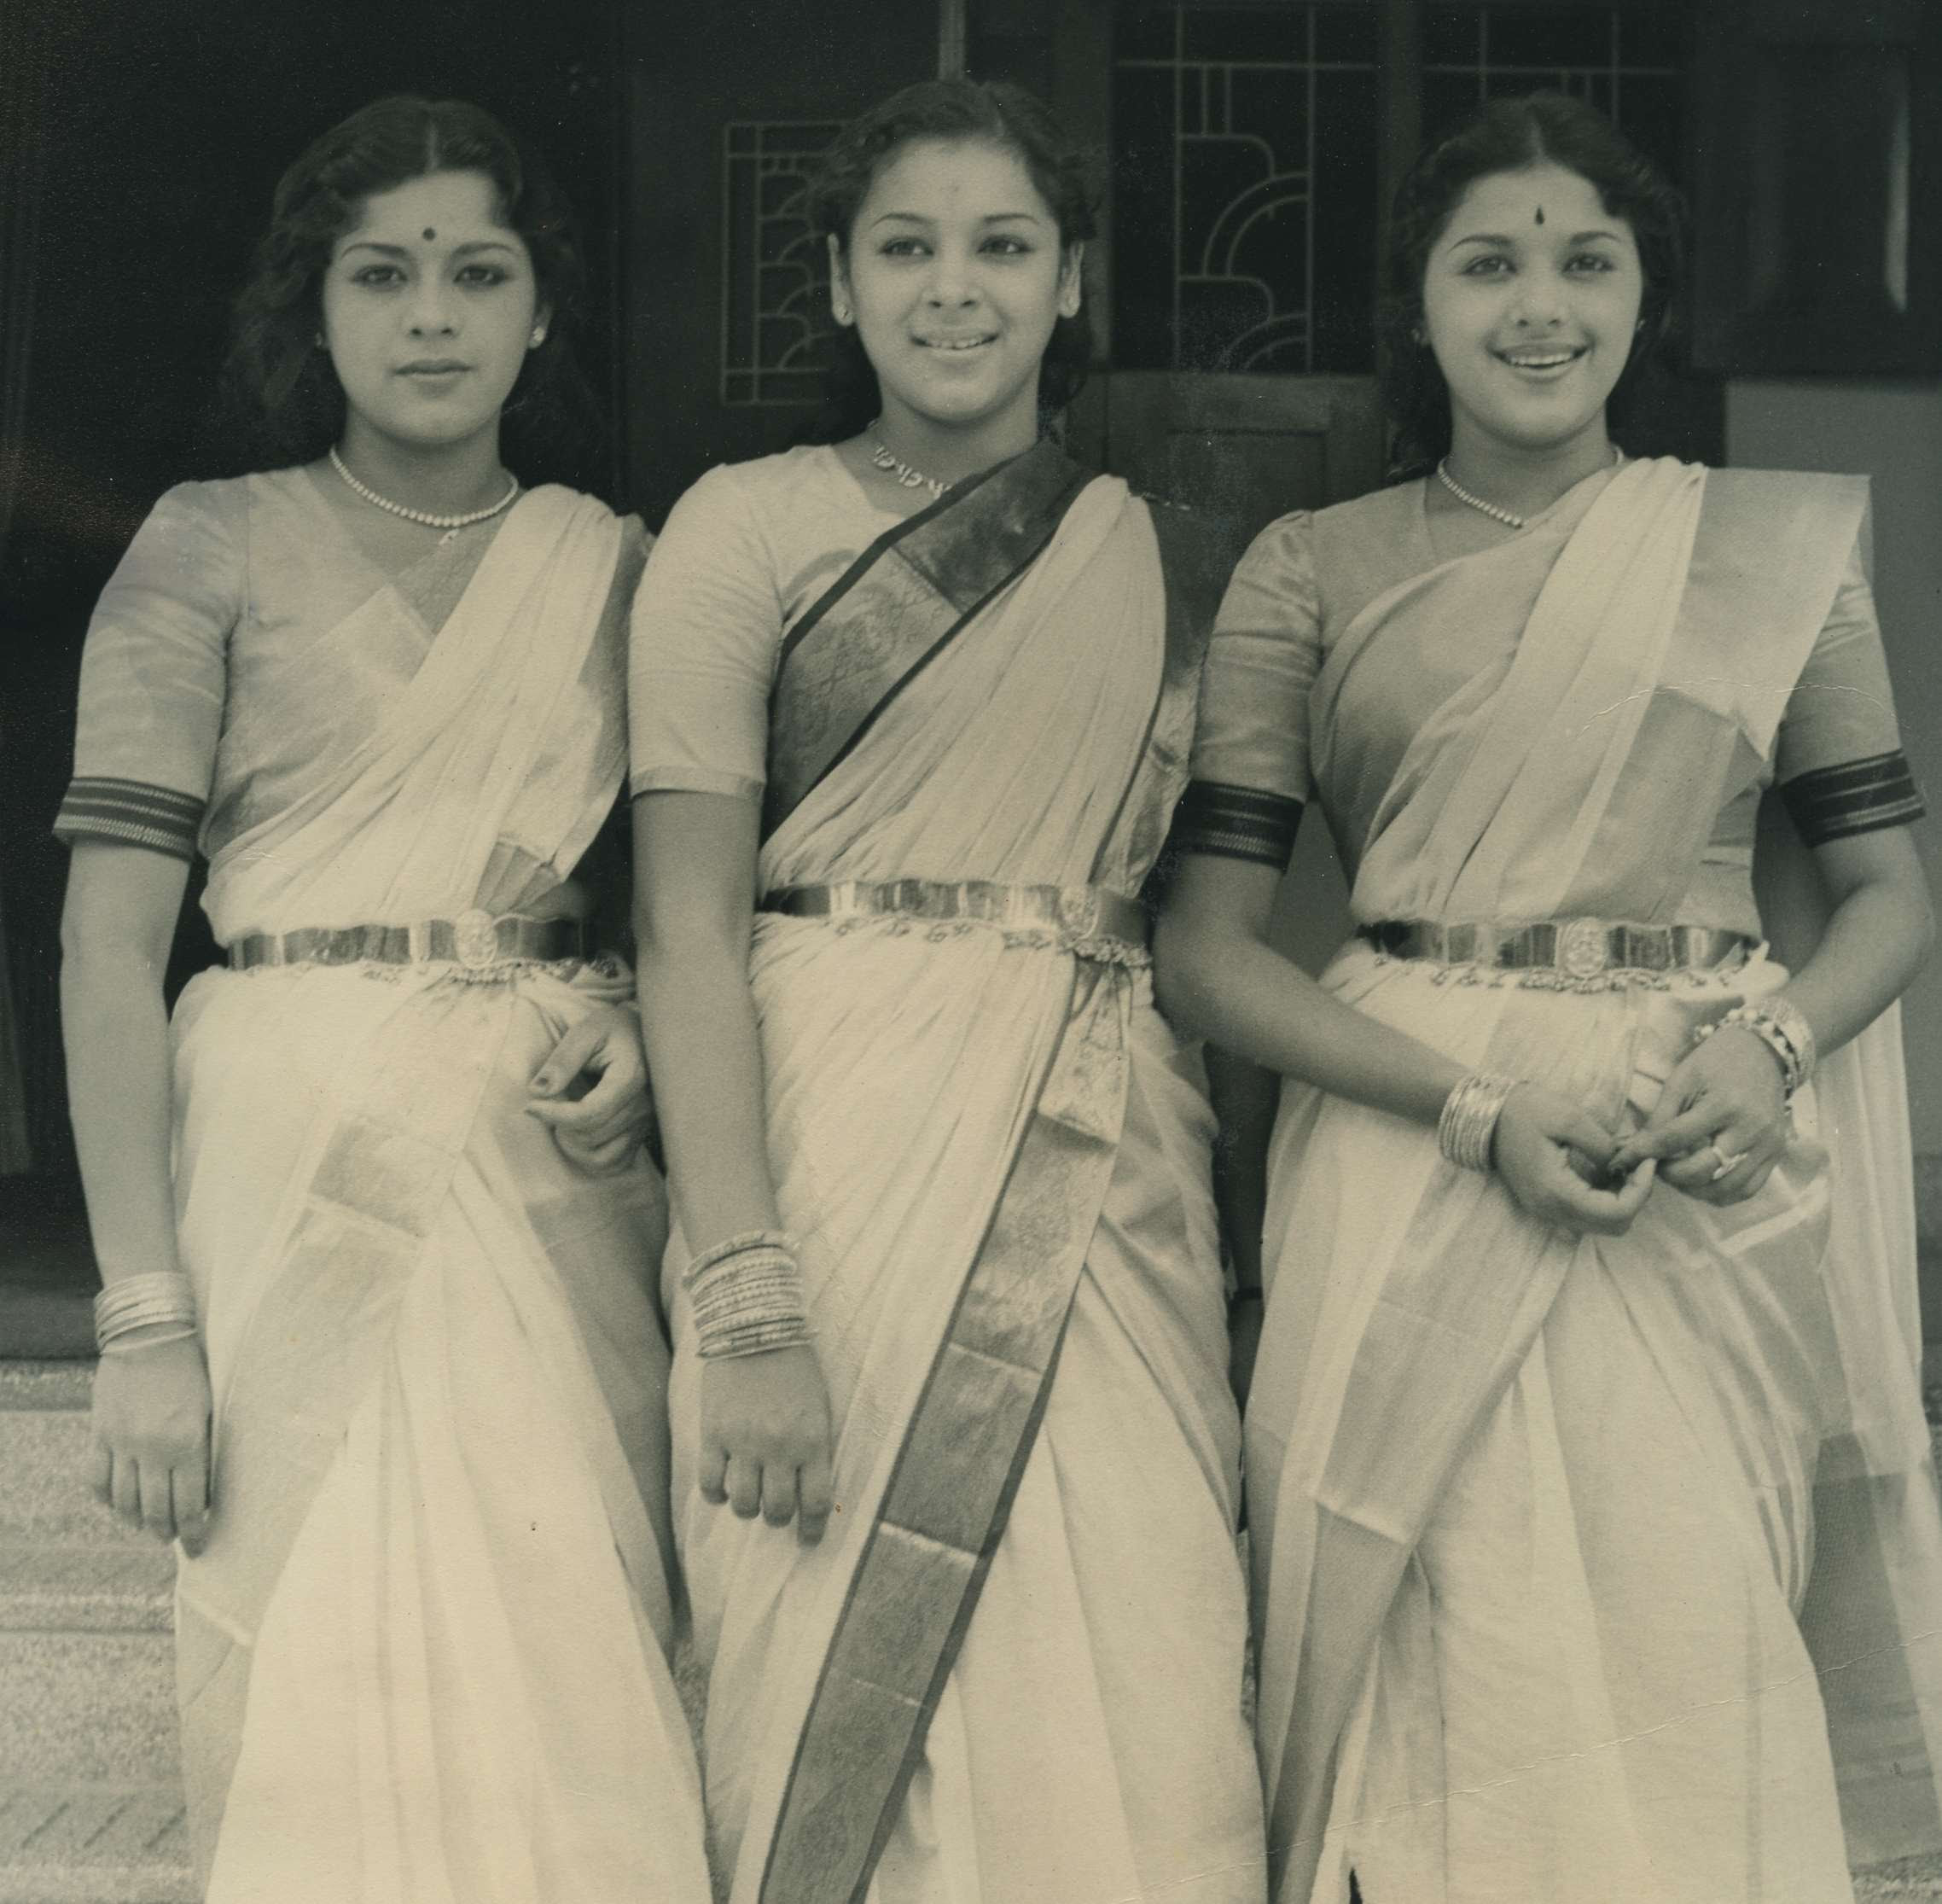 http://www.betsywoodman.com/wordpress/wp-content/uploads/2012/08/Travancore-Sisters-Aug-31-1954.jpg